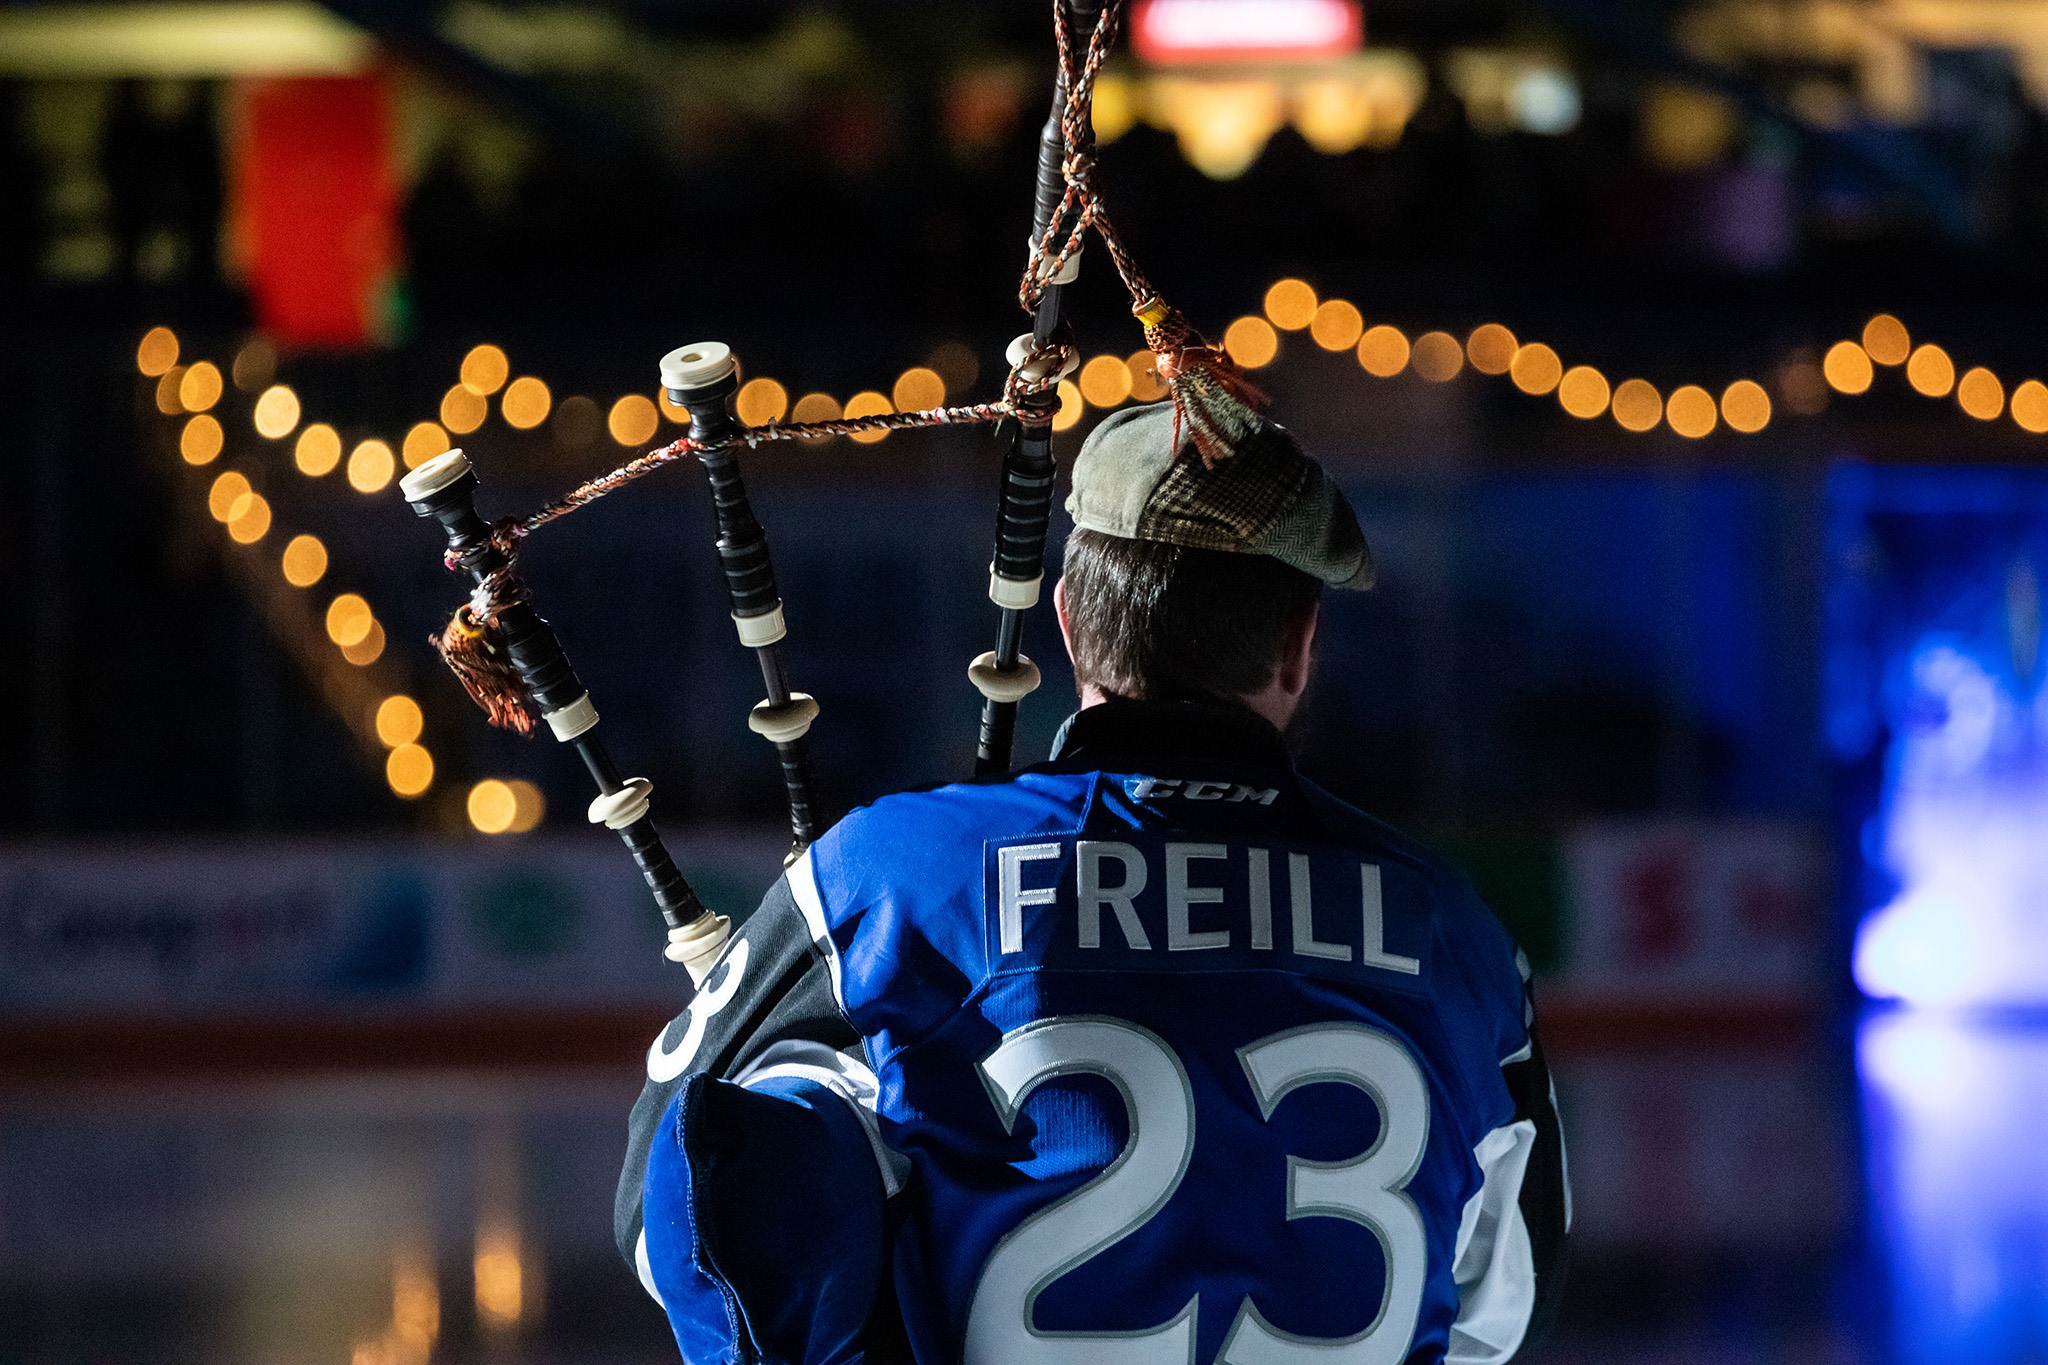 Liam Freill opens Sea Dogs games with the a call to arms on the bagpipes